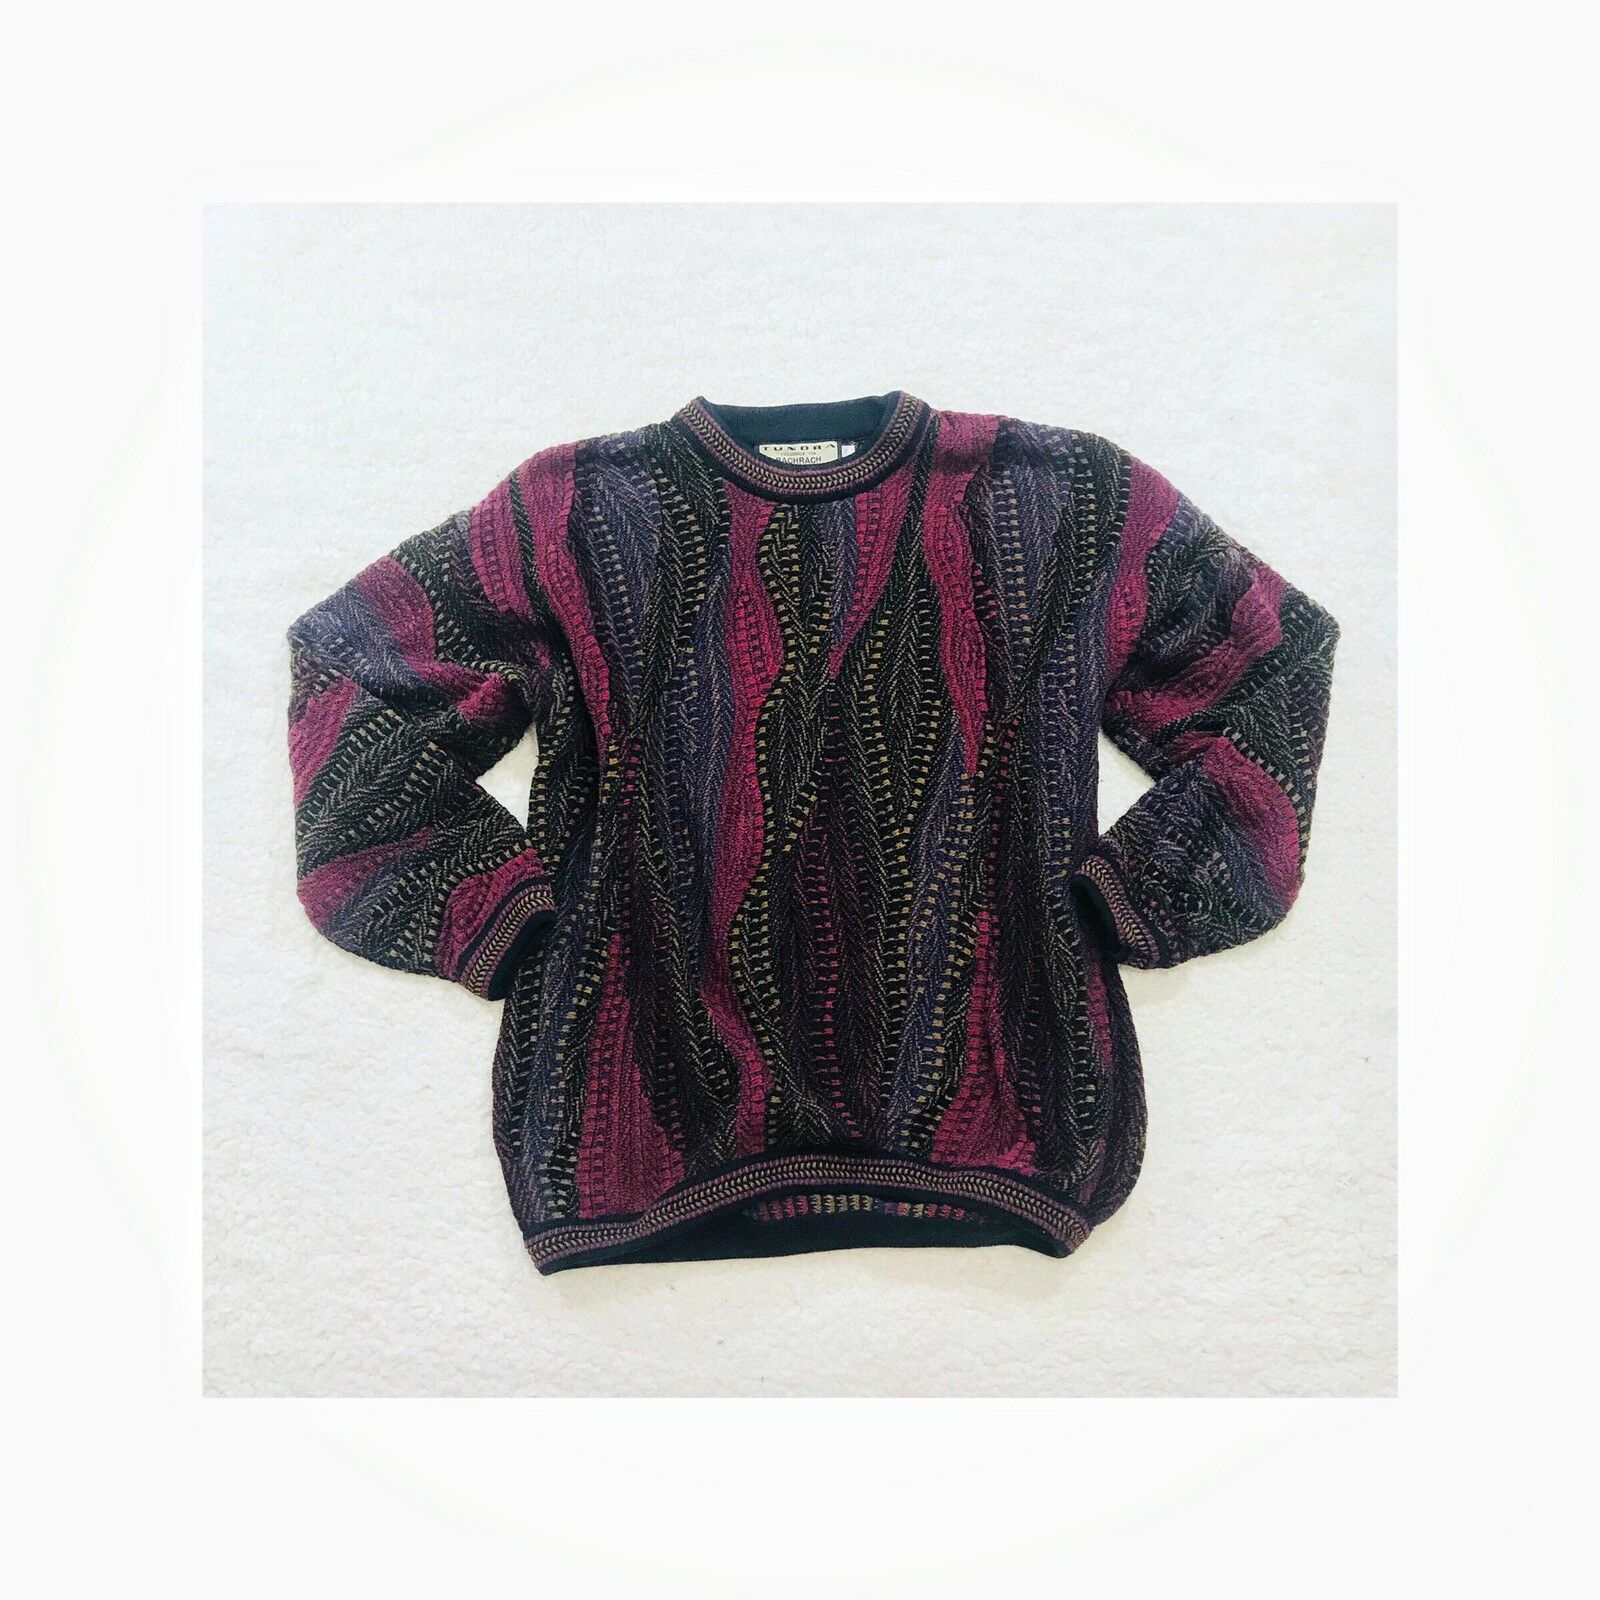 Tundra for Bachrach Mens Vintage Extra Large Coogi Style Sweater Purple Printed